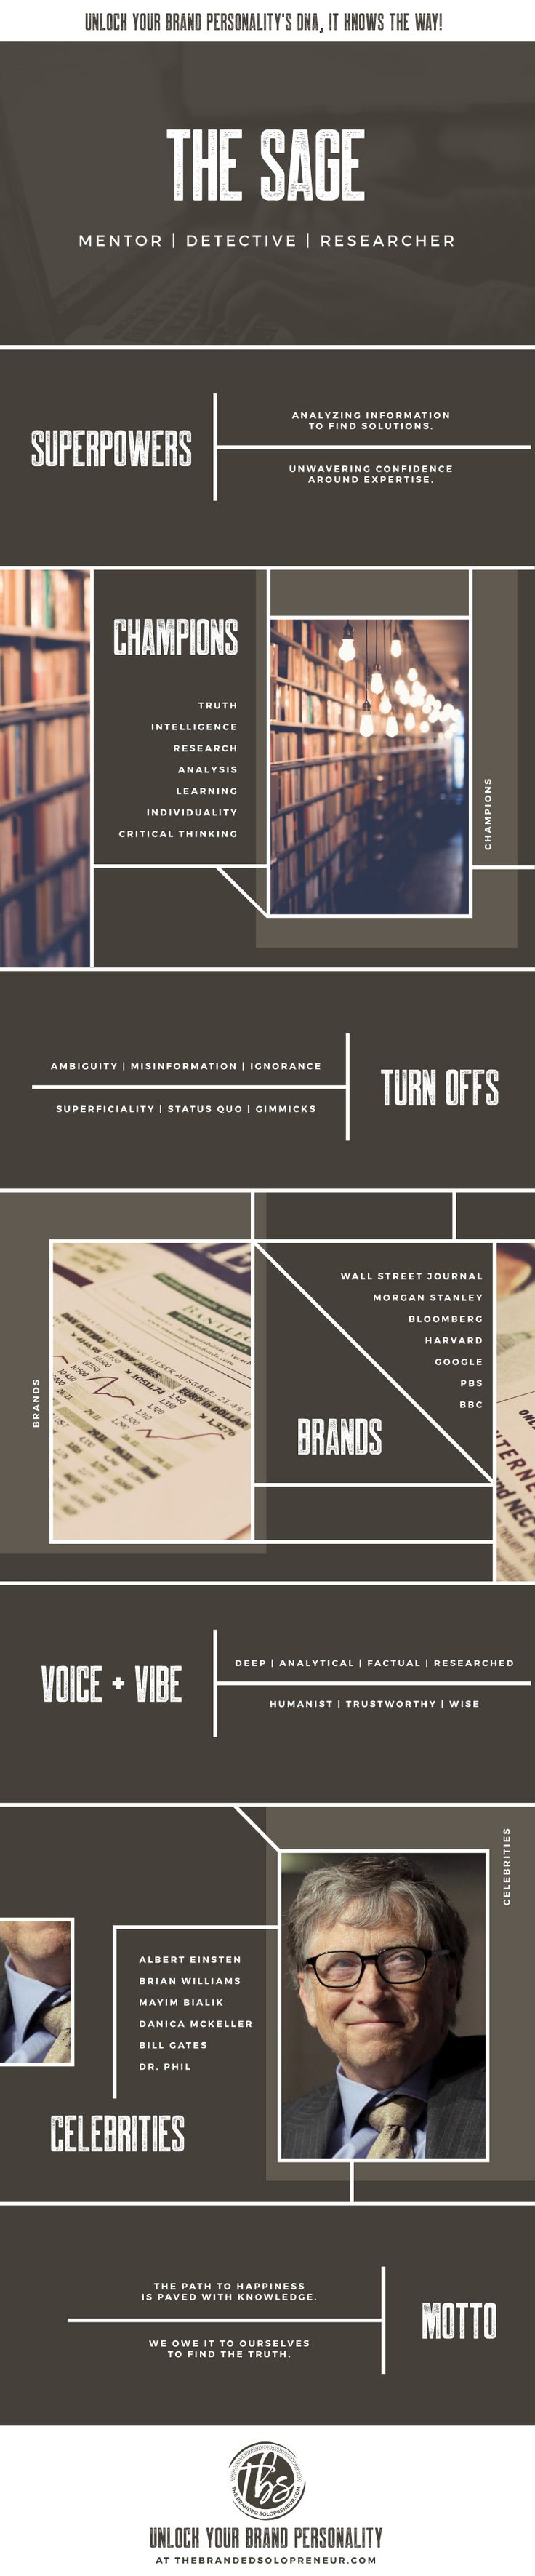 The Sage Brand Archetype | You're a researcher and teacher at heart. You prefer to analyze patterns, numbers, and data to find solutions, and you're not stingy with those solutions. You love studying and understanding how the universe works and sharing what you've learned with others. Your audience sees you as an objective, factual and trustworthy source of expertise. | Brand Archetypes | Brand Personality | Sage Brand Archetype | Sage Archetype | Personality Brand Archetype | Branding…